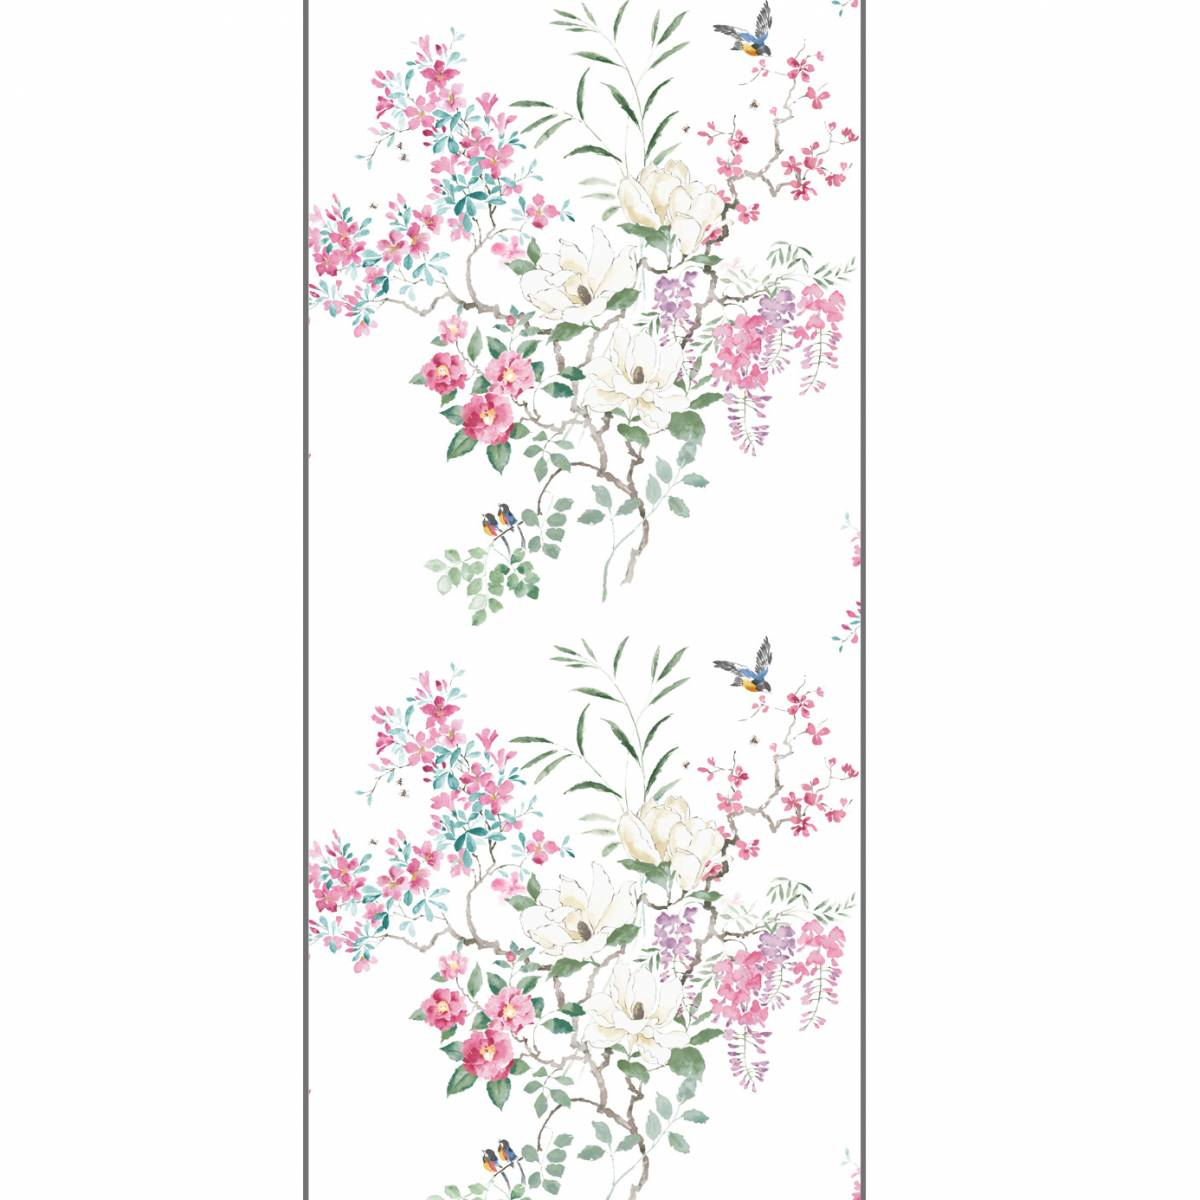 Sanderson Waterperry Wallpapers Magnolia & Blossom Wallpaper - Blossom/Leaf PANEL A - 216305. Loading zoom